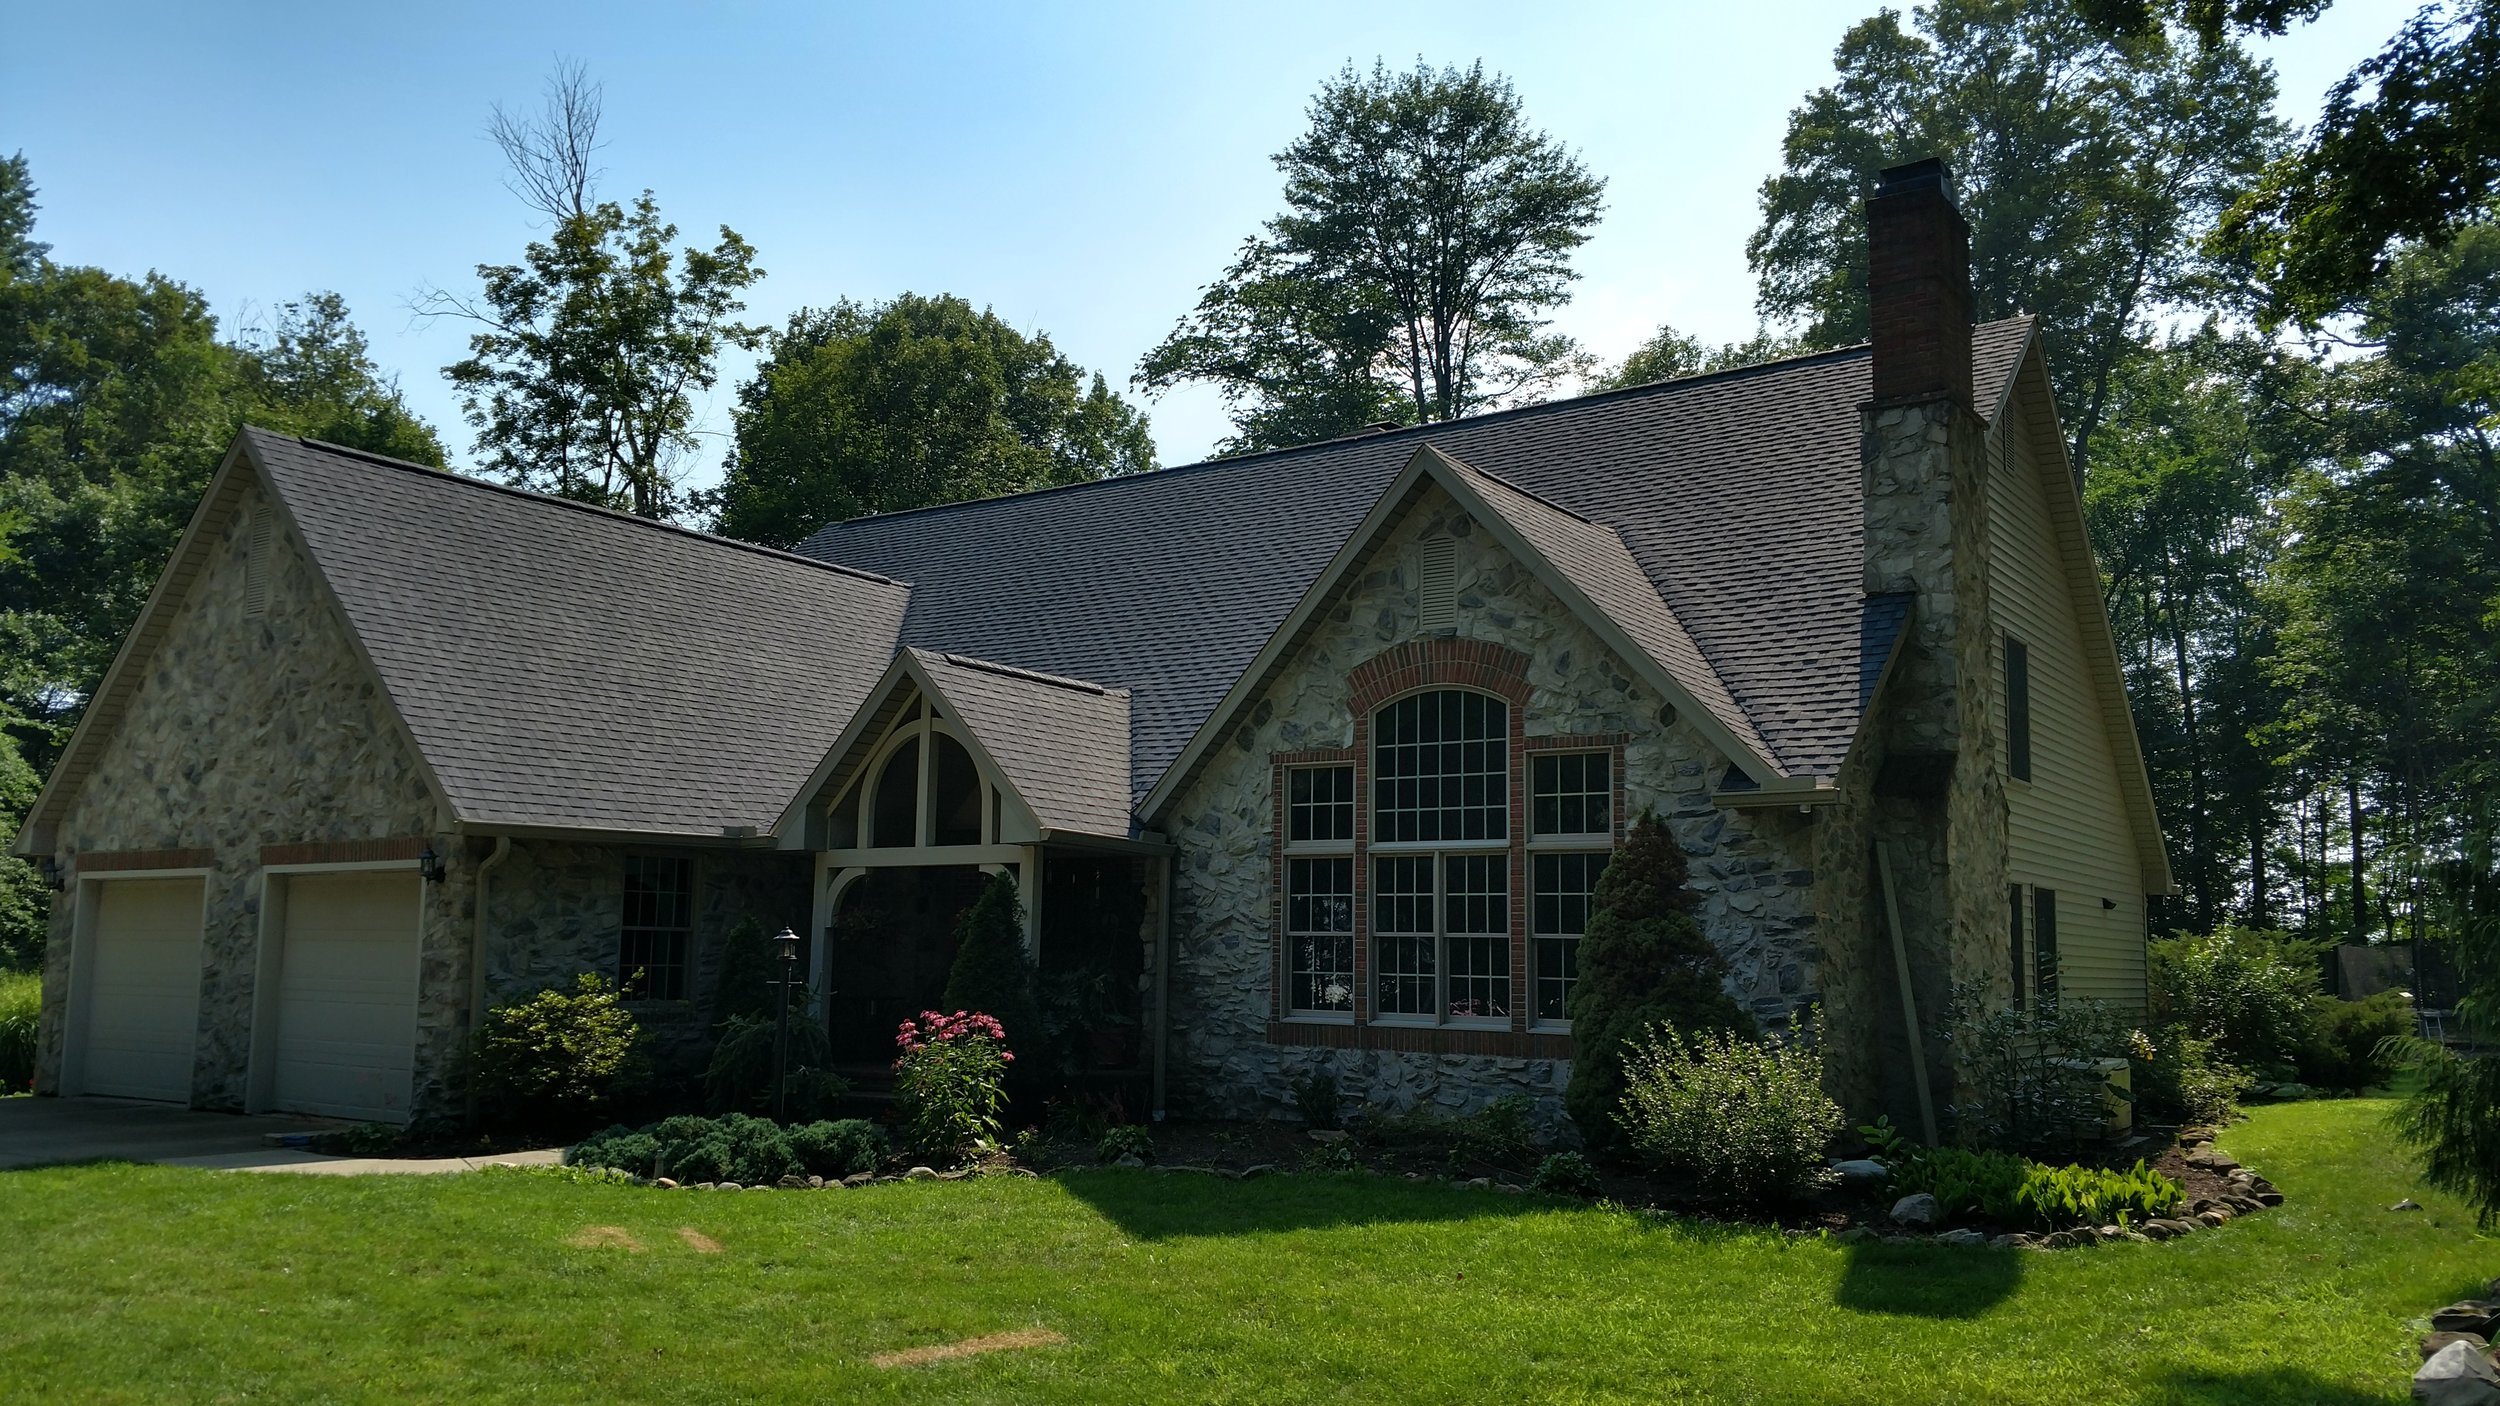 Roofing Installation near Wooster, Ohio.